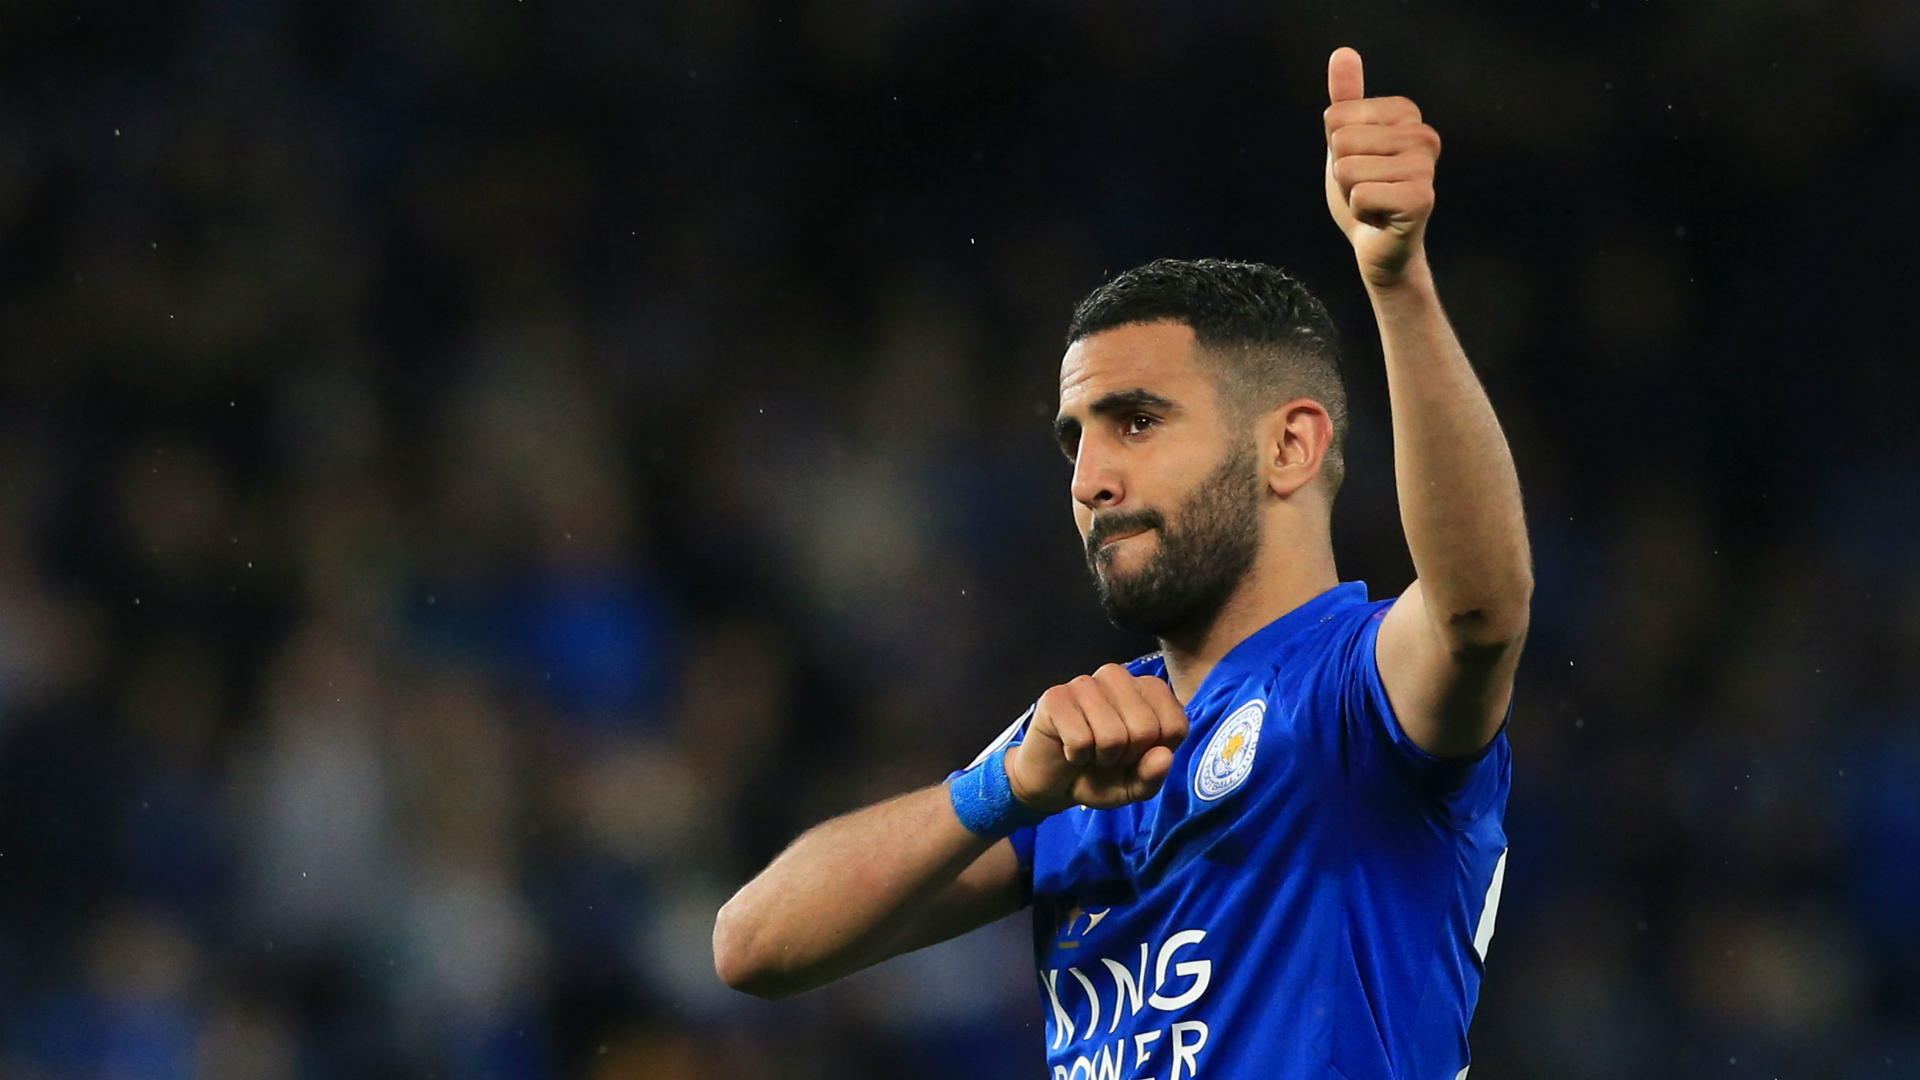 Riyad Mahrez joins Manchester City from Leicester